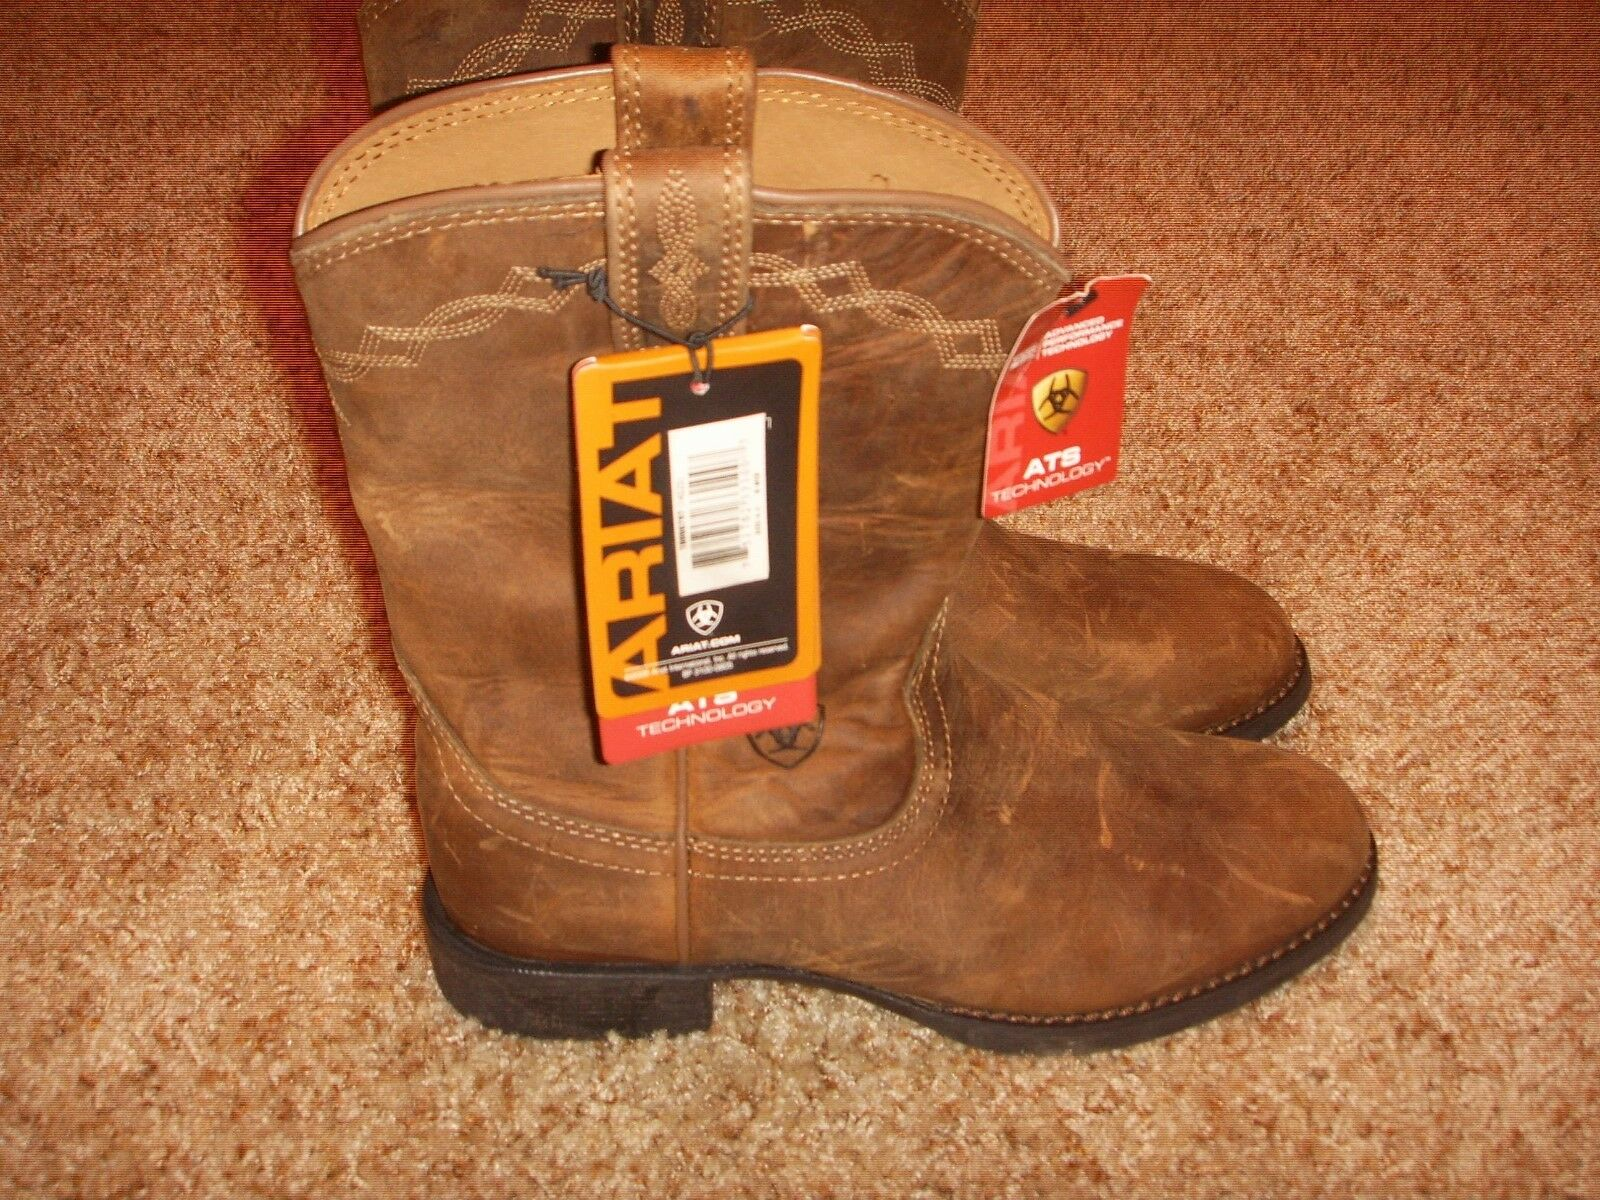 Ariat 10000797 Heritage RoperRToe Western LEATHER Cowgirl Boots Womens Size 6.5M